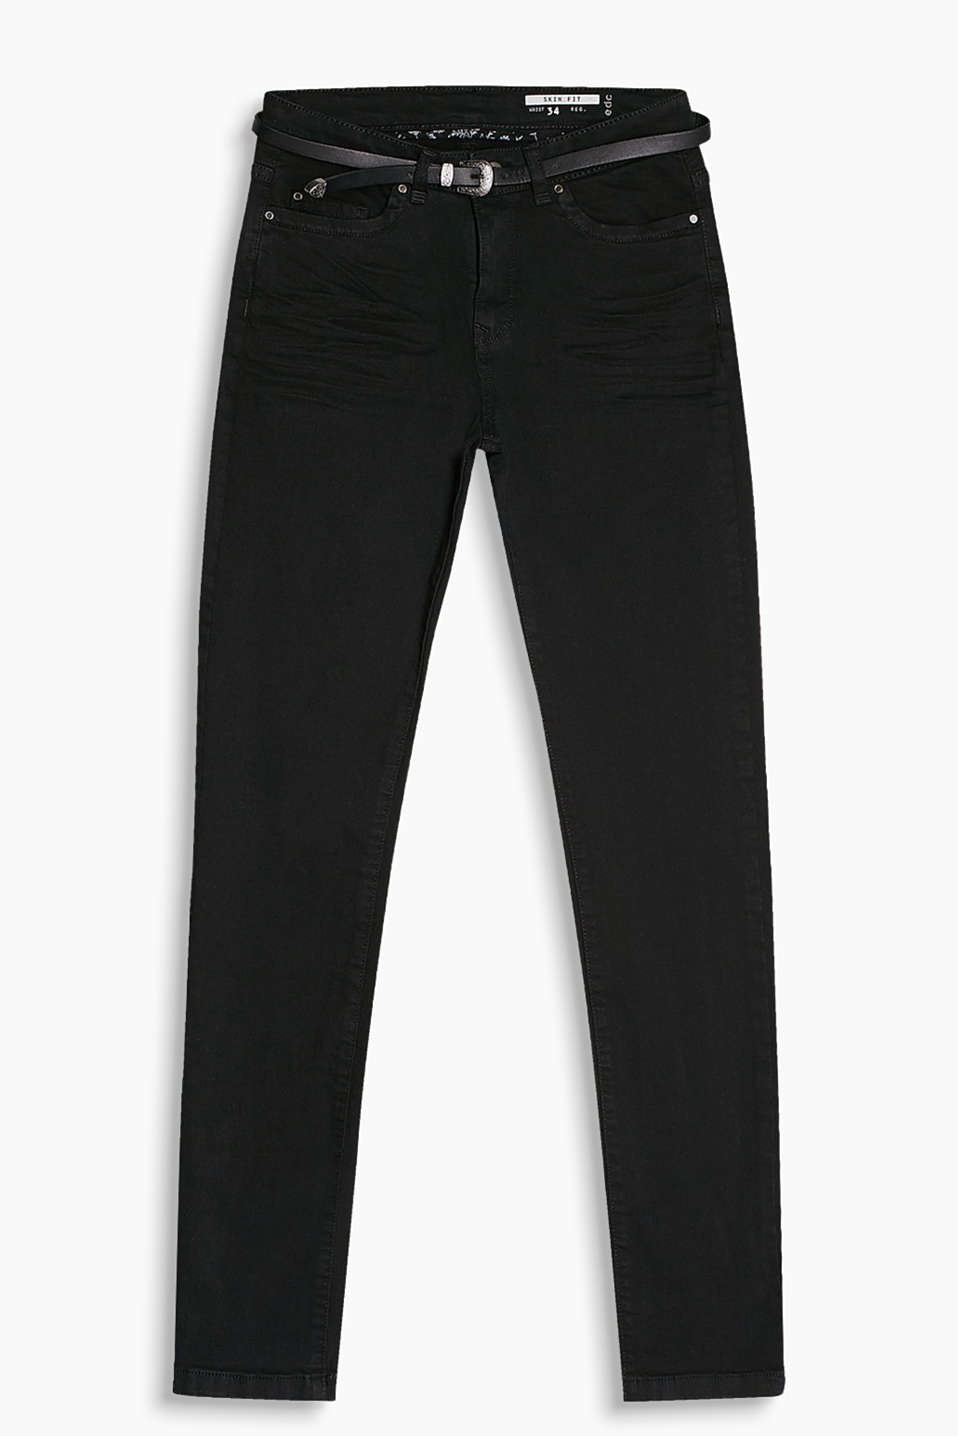 Five pocket trousers in stretch cotton with a Western style belt